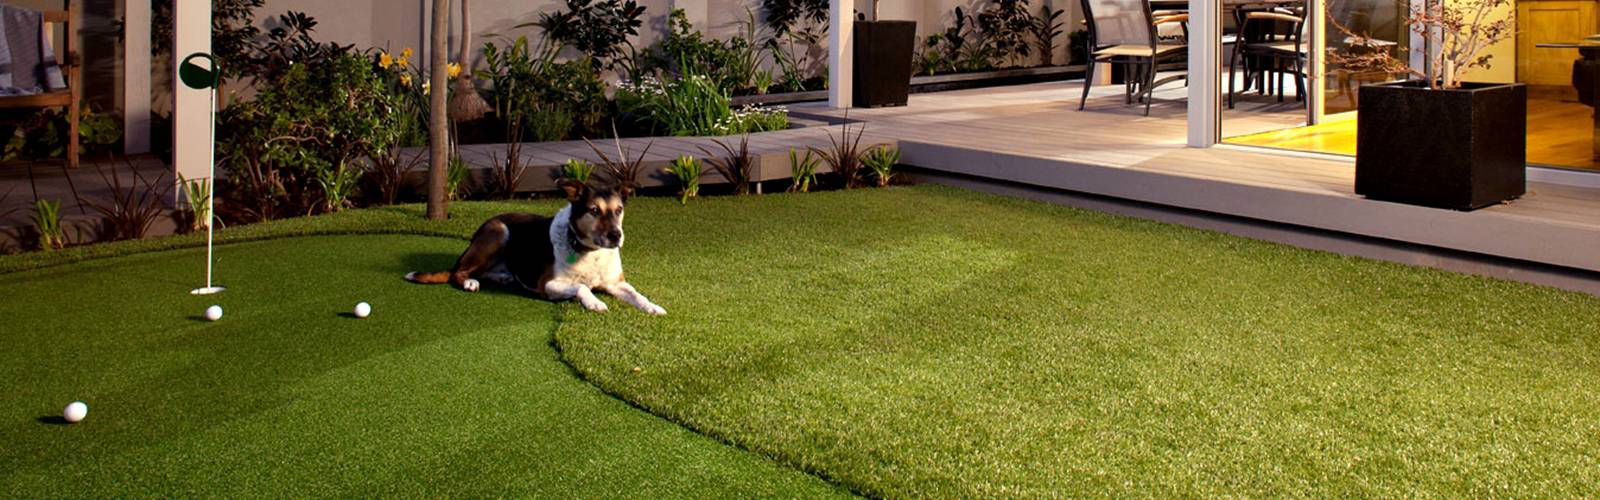 Artificial Grass Perth - Hero